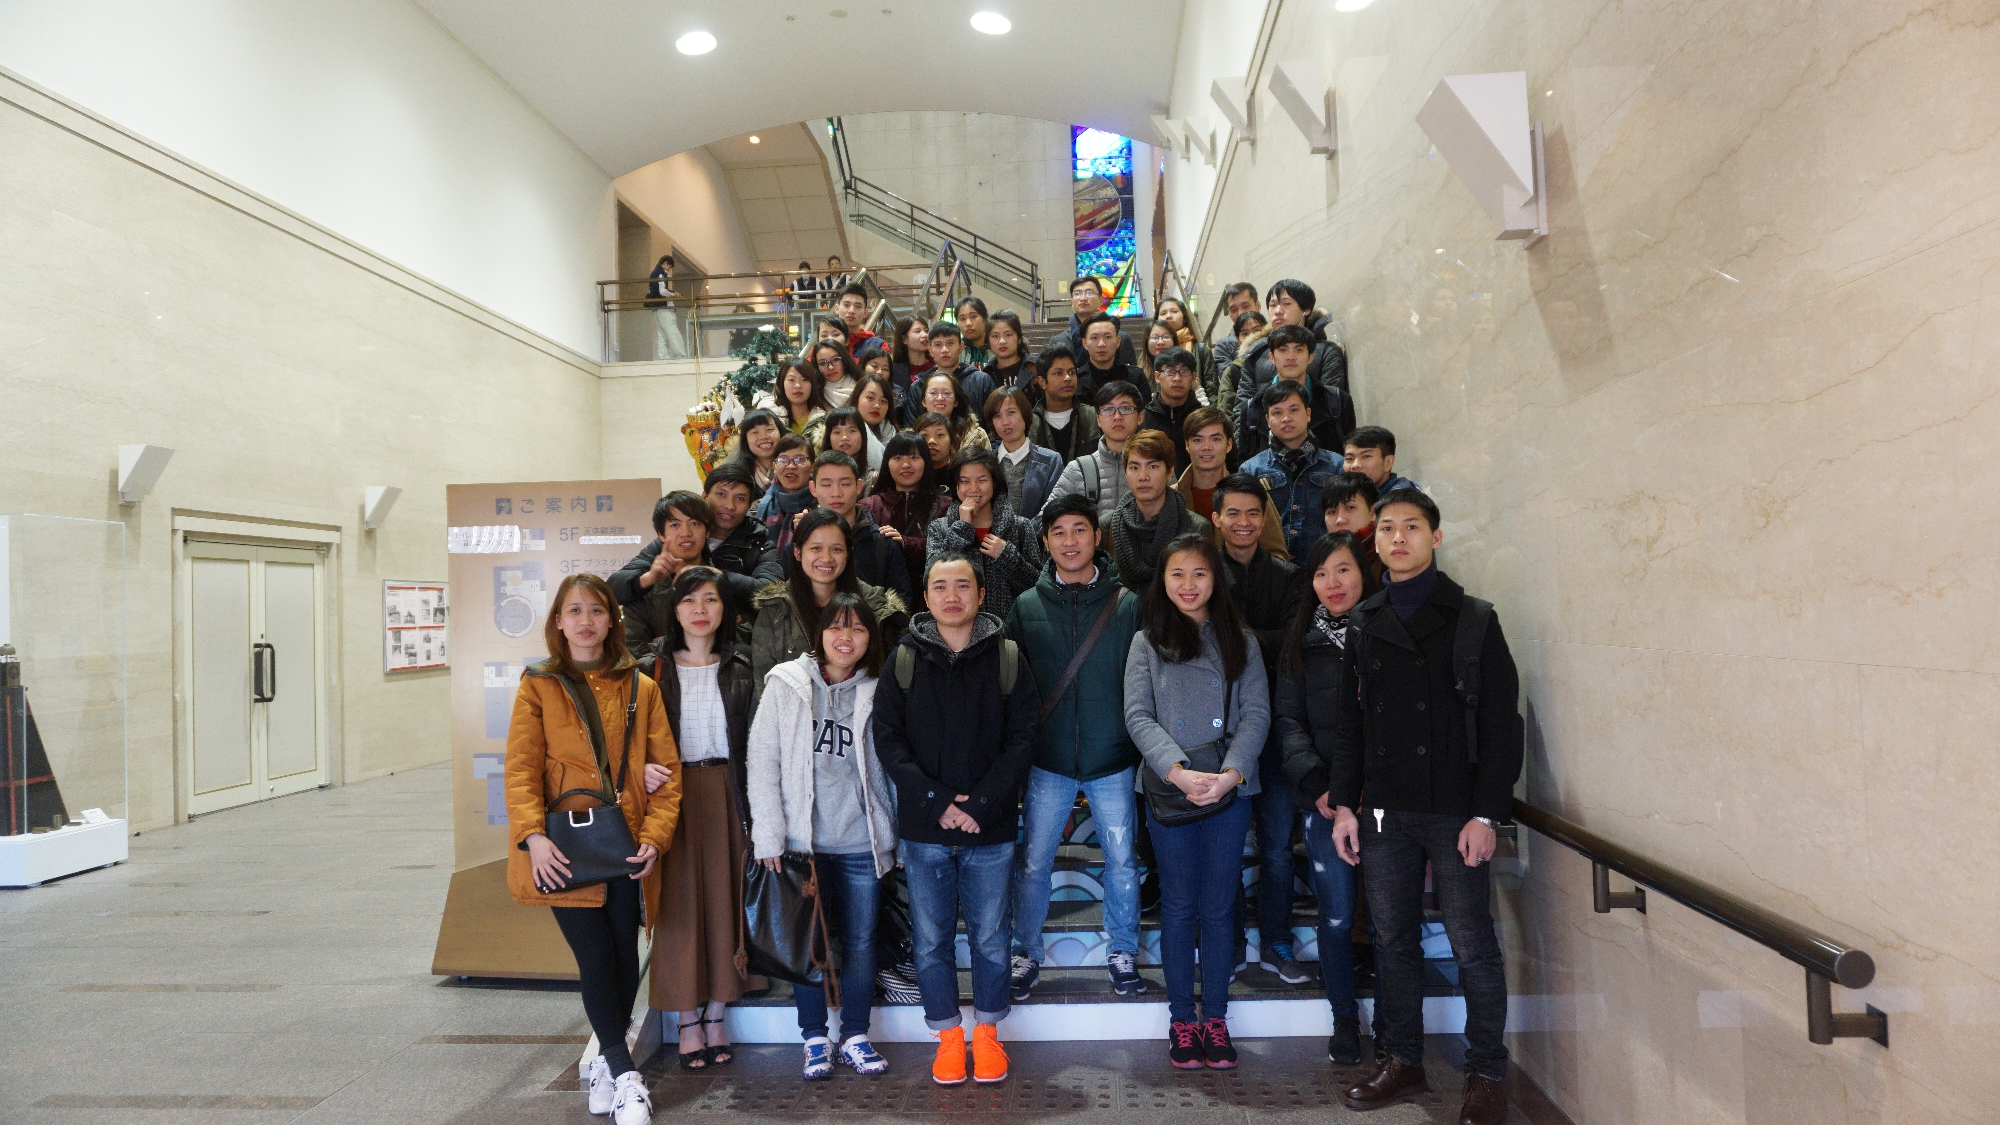 2016/12/16 School field trip at  the Katsushika planetarium.